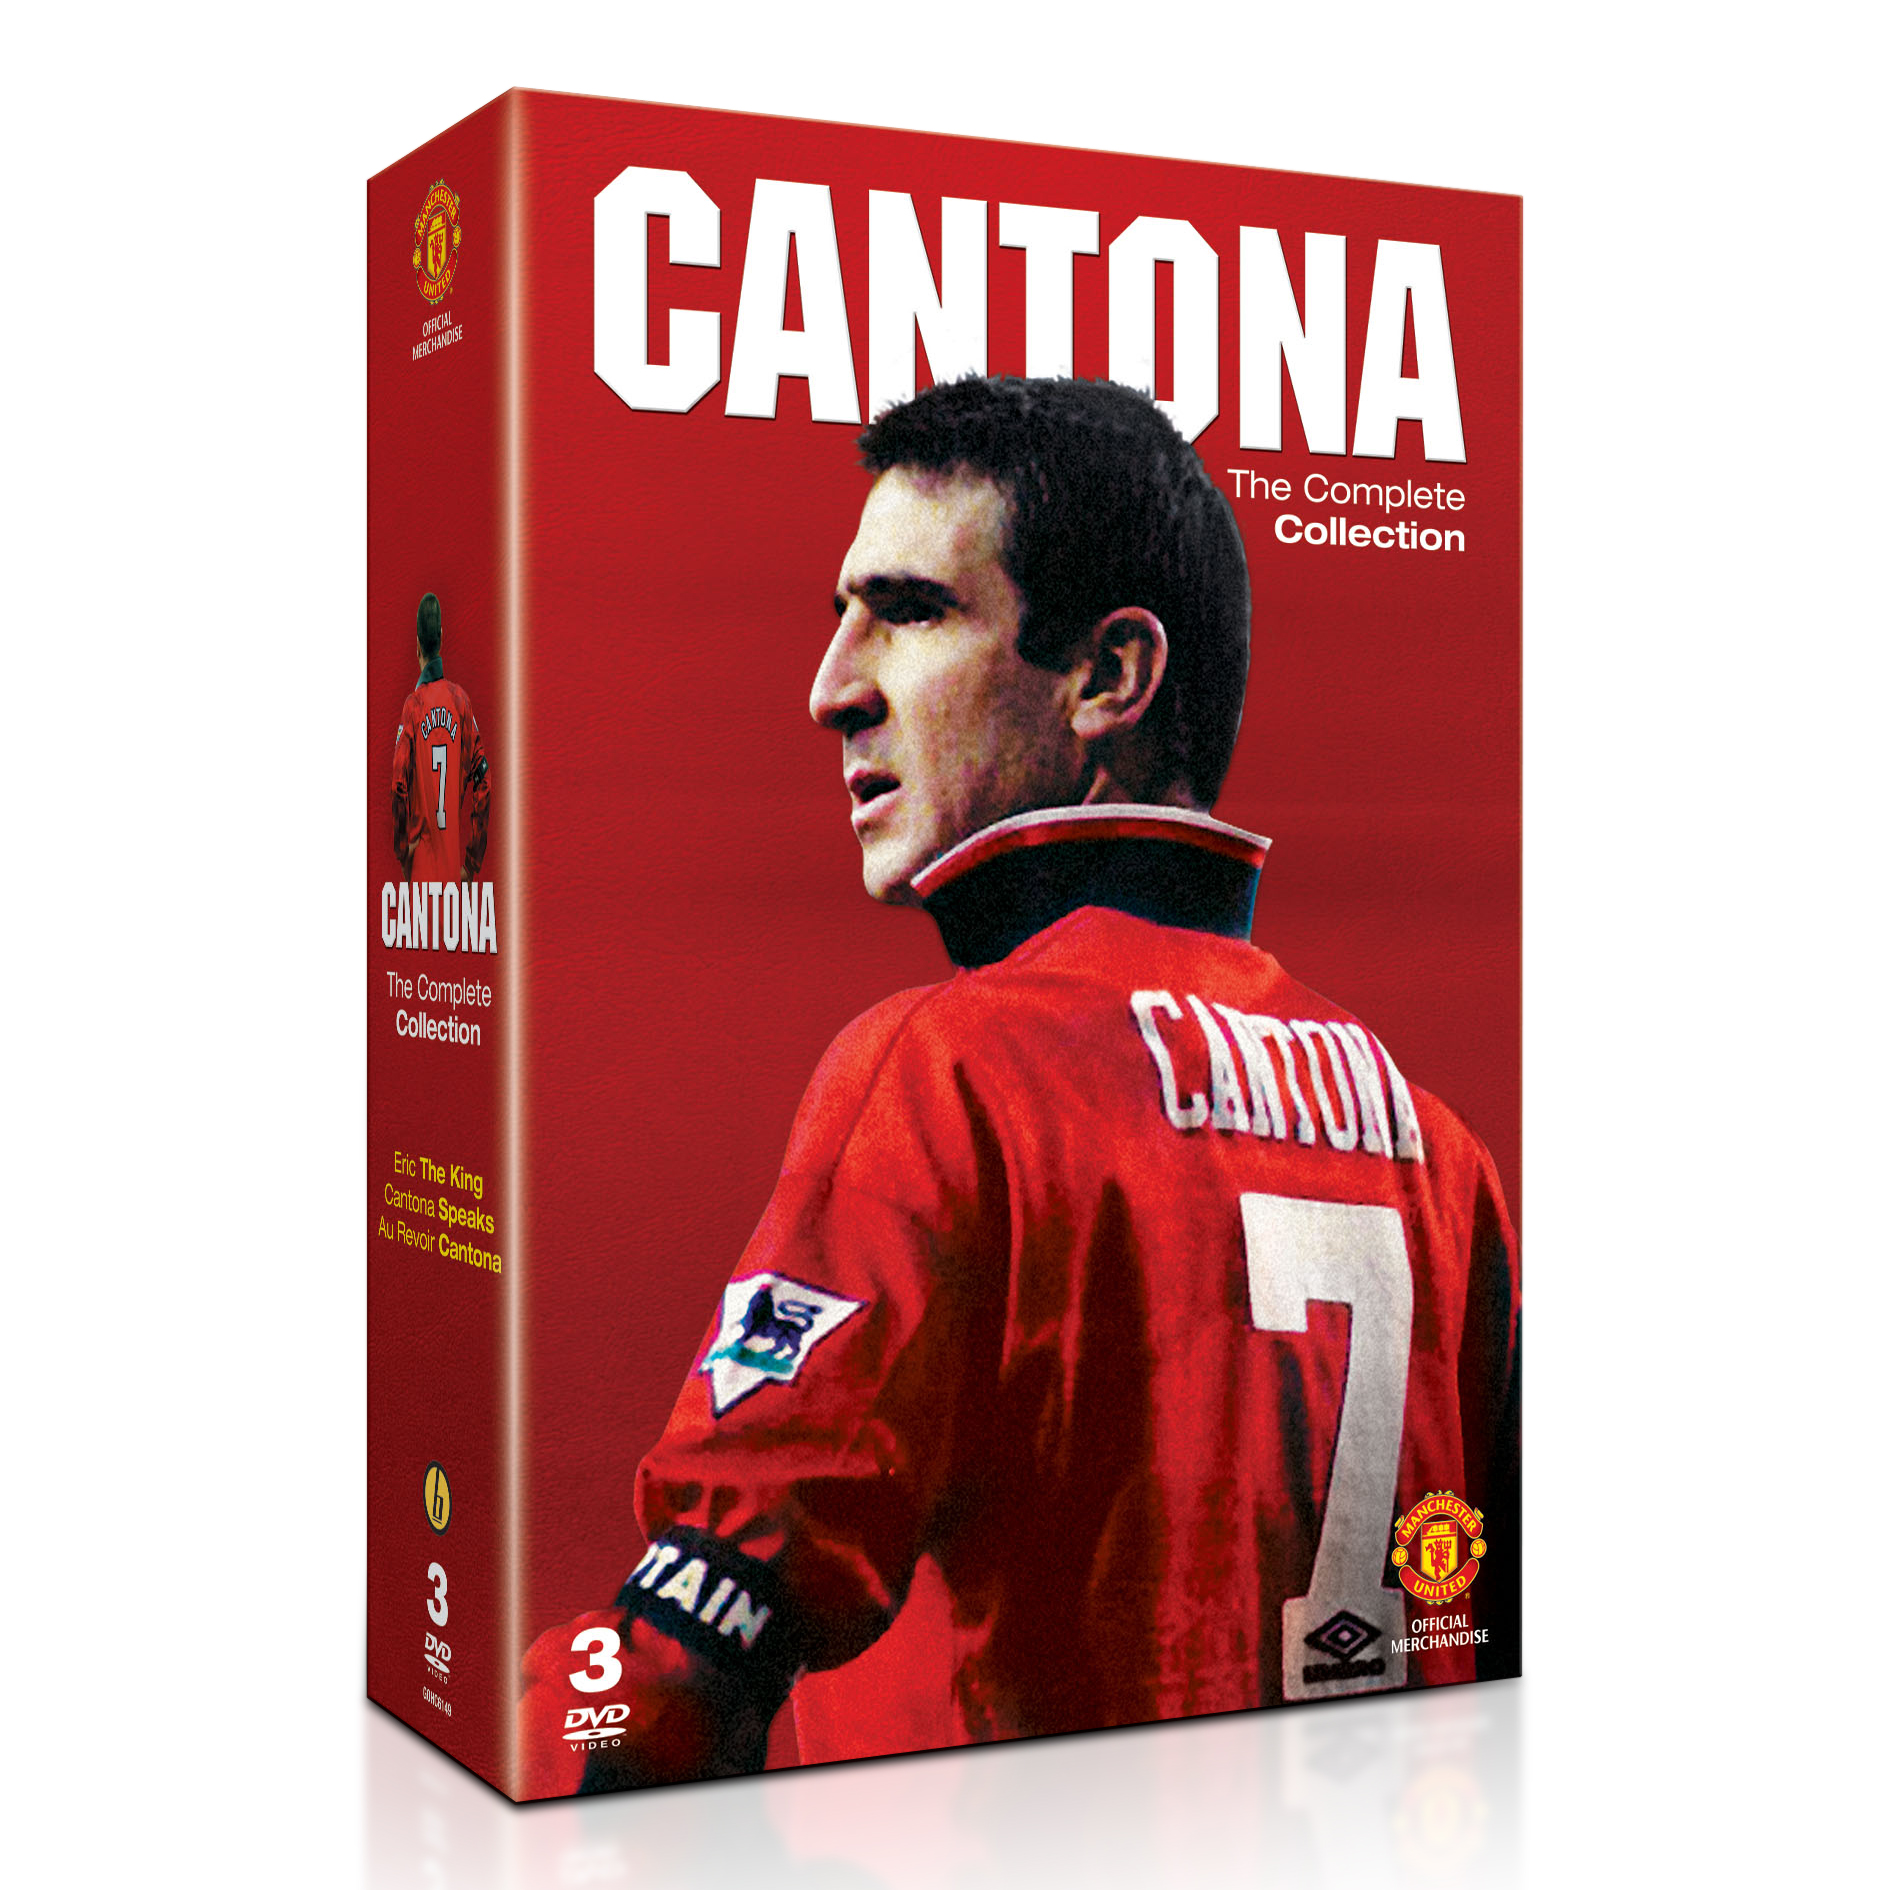 Manchester United Eric Cantona - The Complete Collection - DVD - 3 Discs - PAL